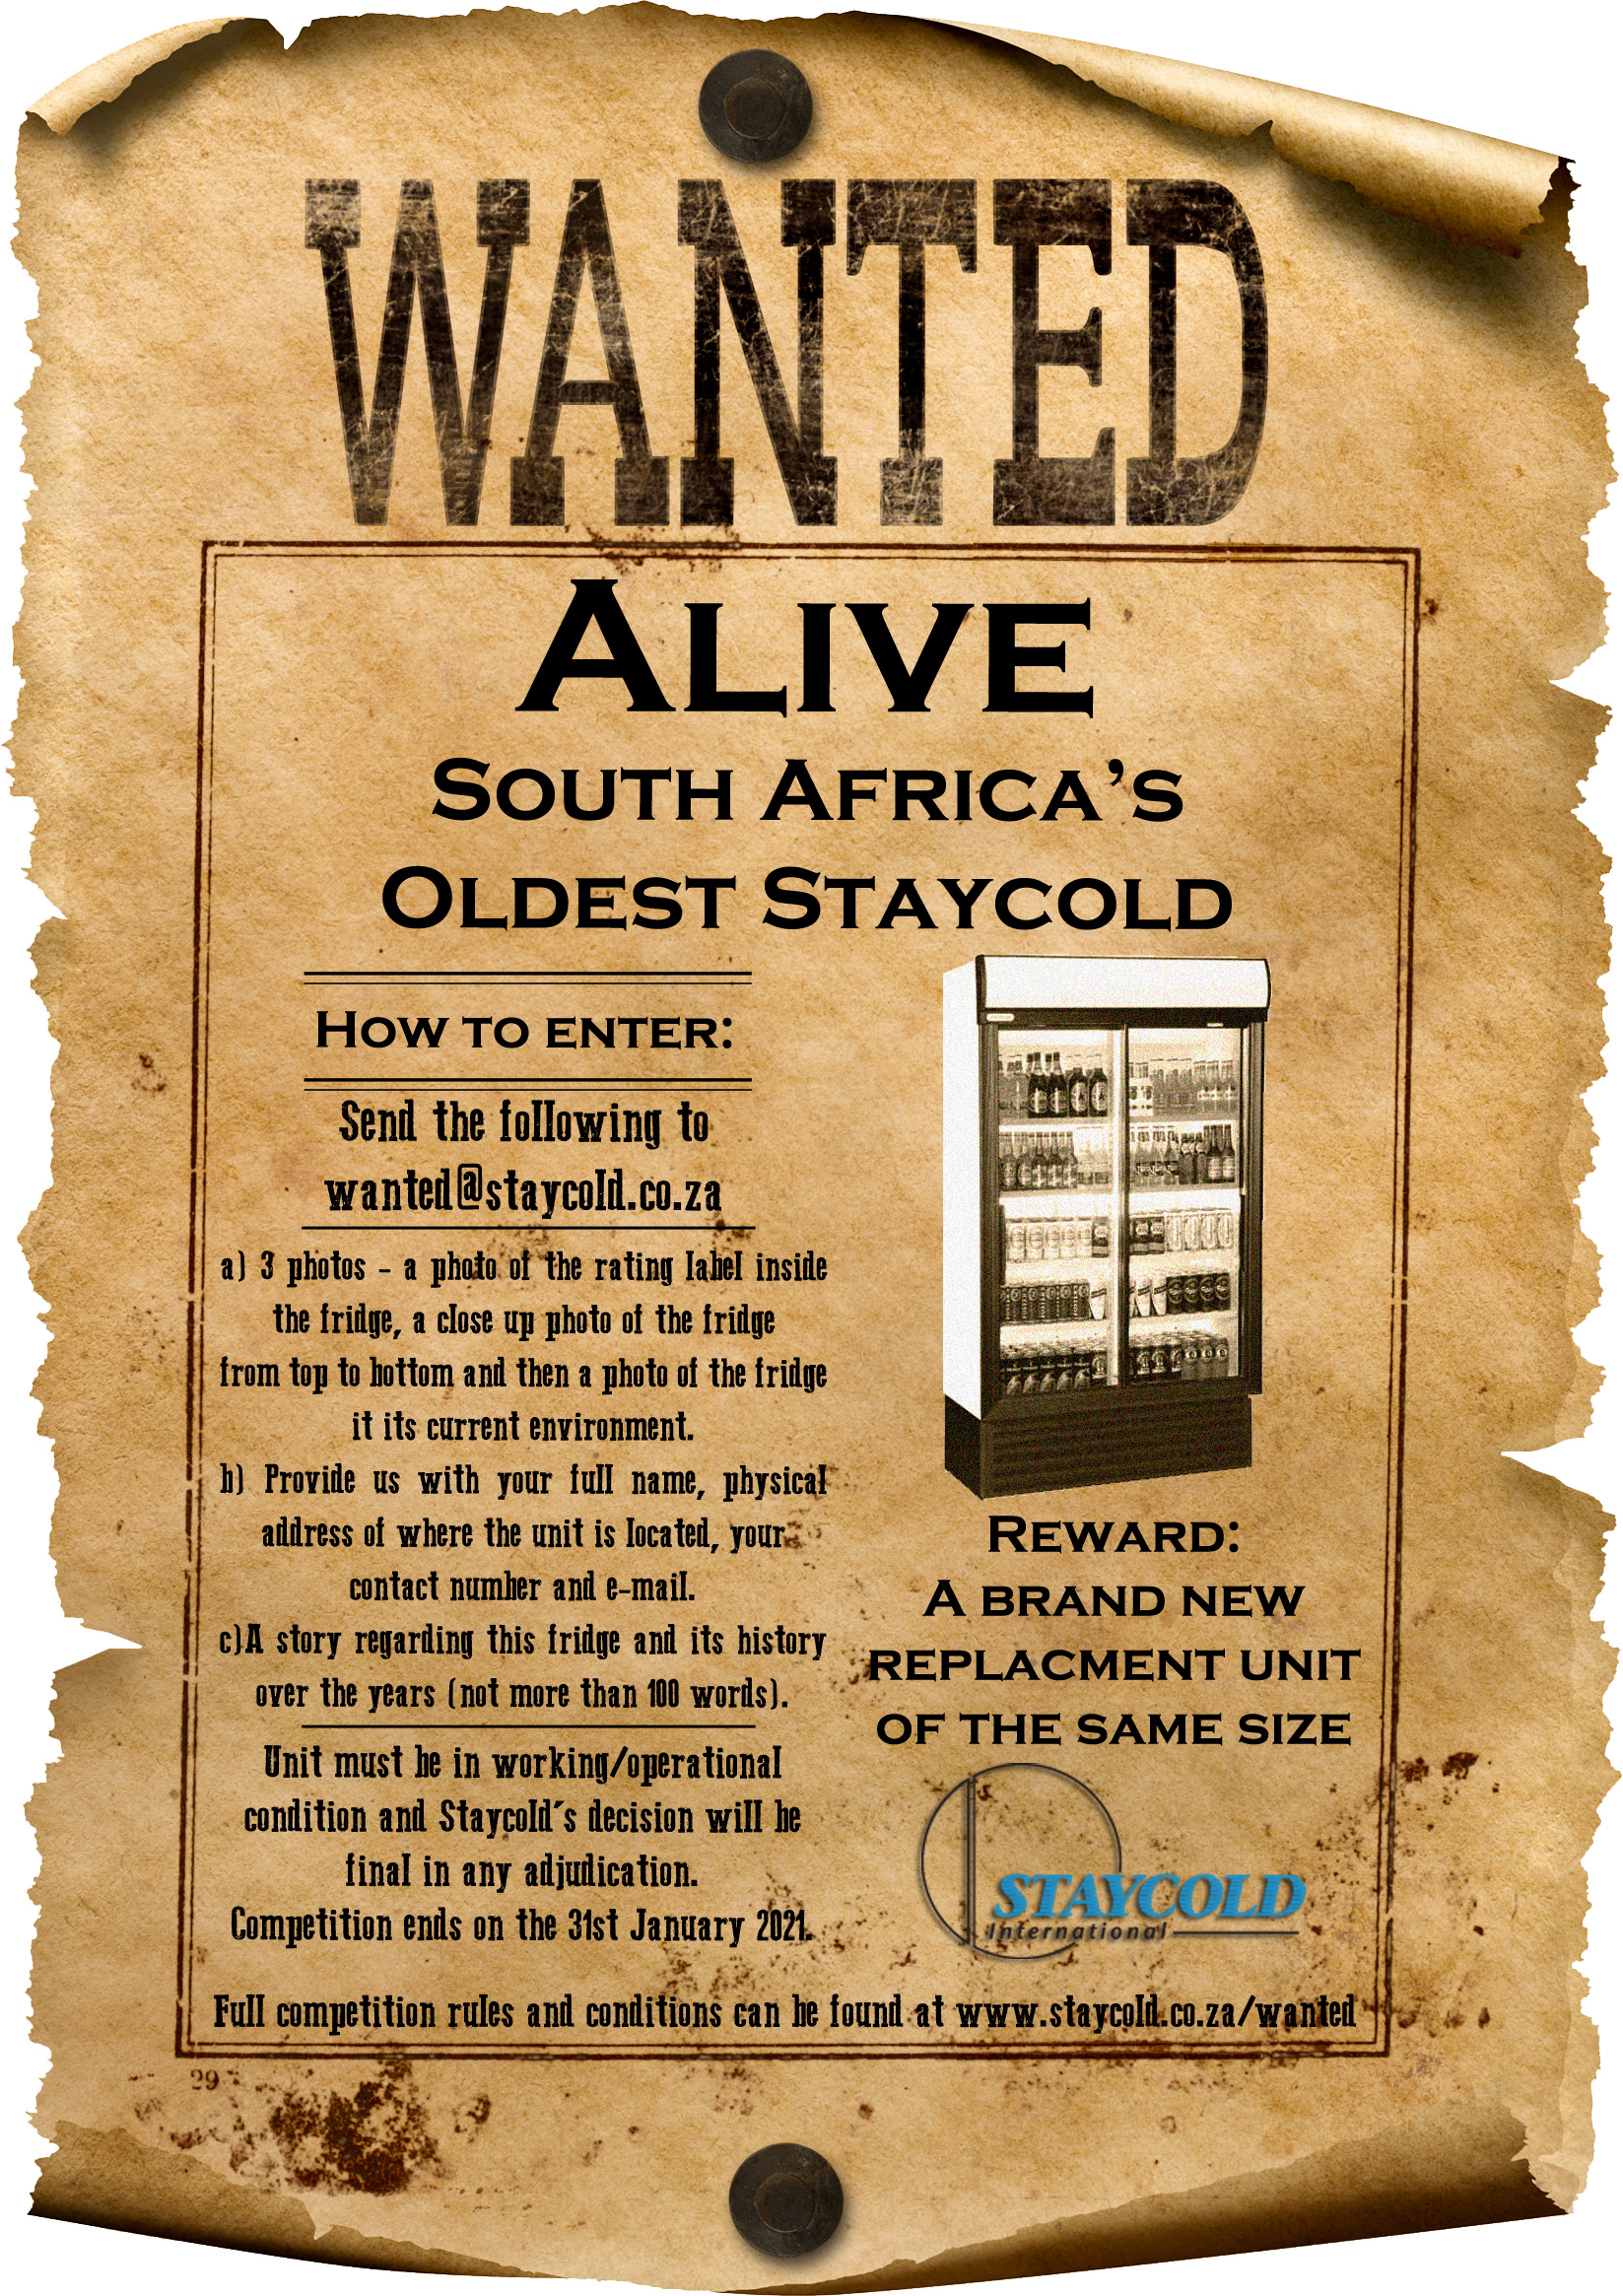 Wanted Poster looking for oldest Staycold in South Africa